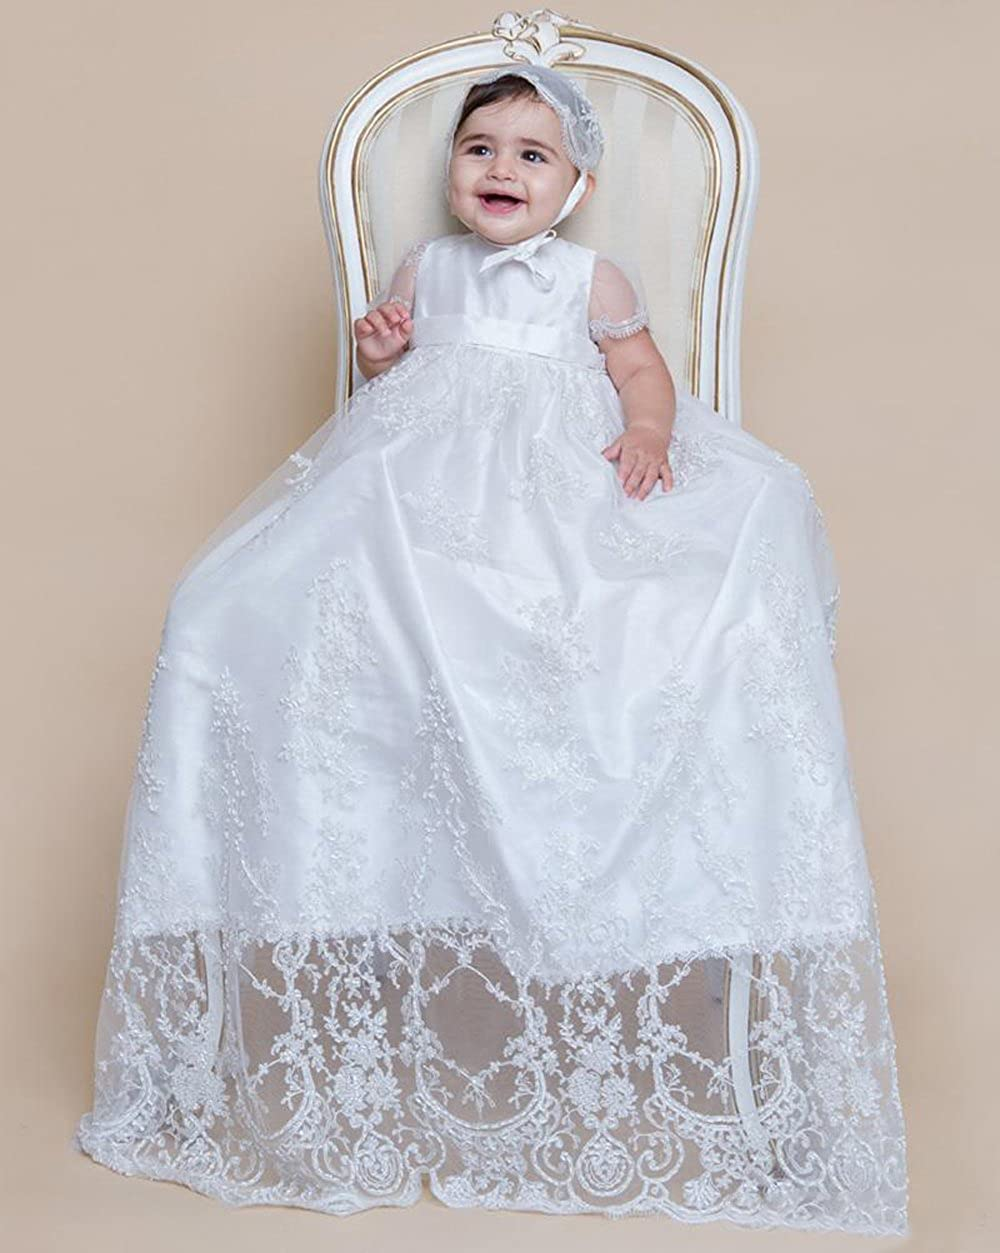 kelaixiang White Long Lace Christening Gown Baby Girls Party Dress